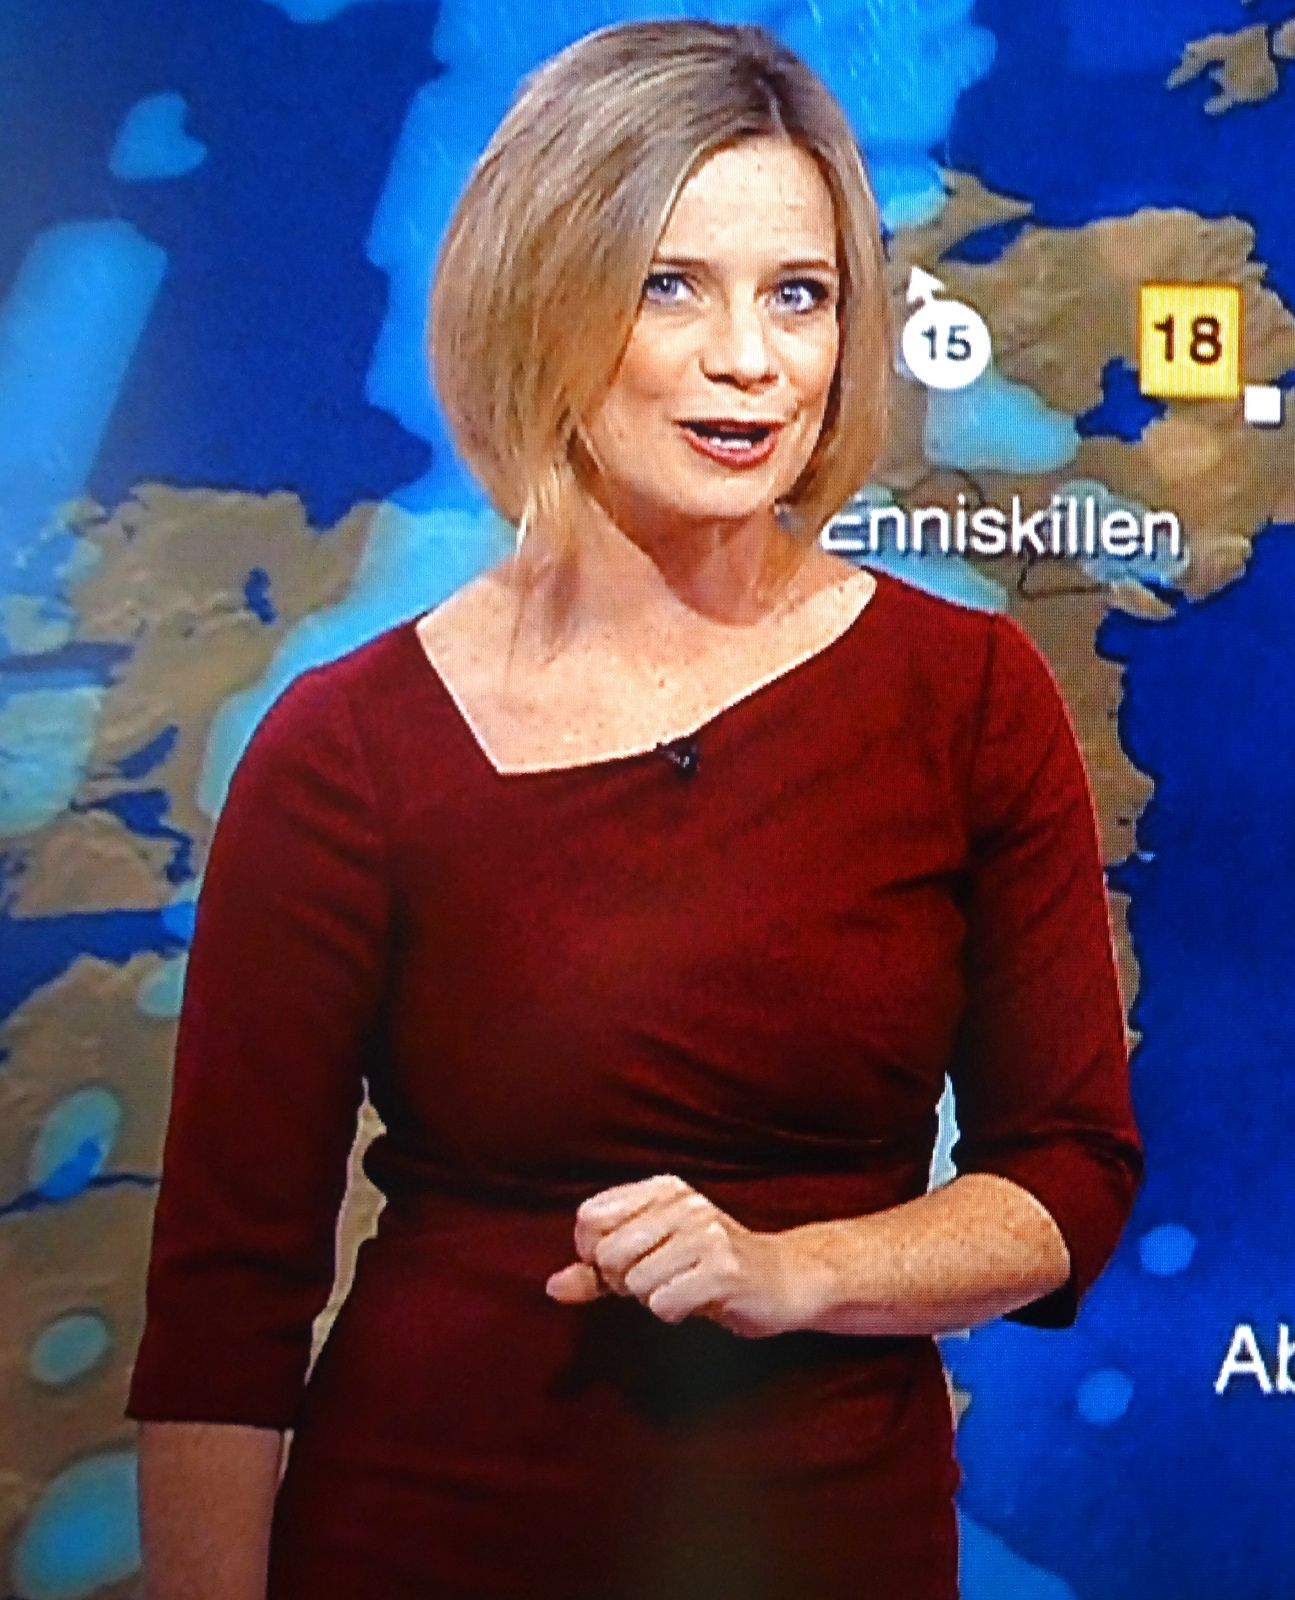 Sarah Keith Lucas Hottest Weather Girls Bbc Presenters Tv Girls